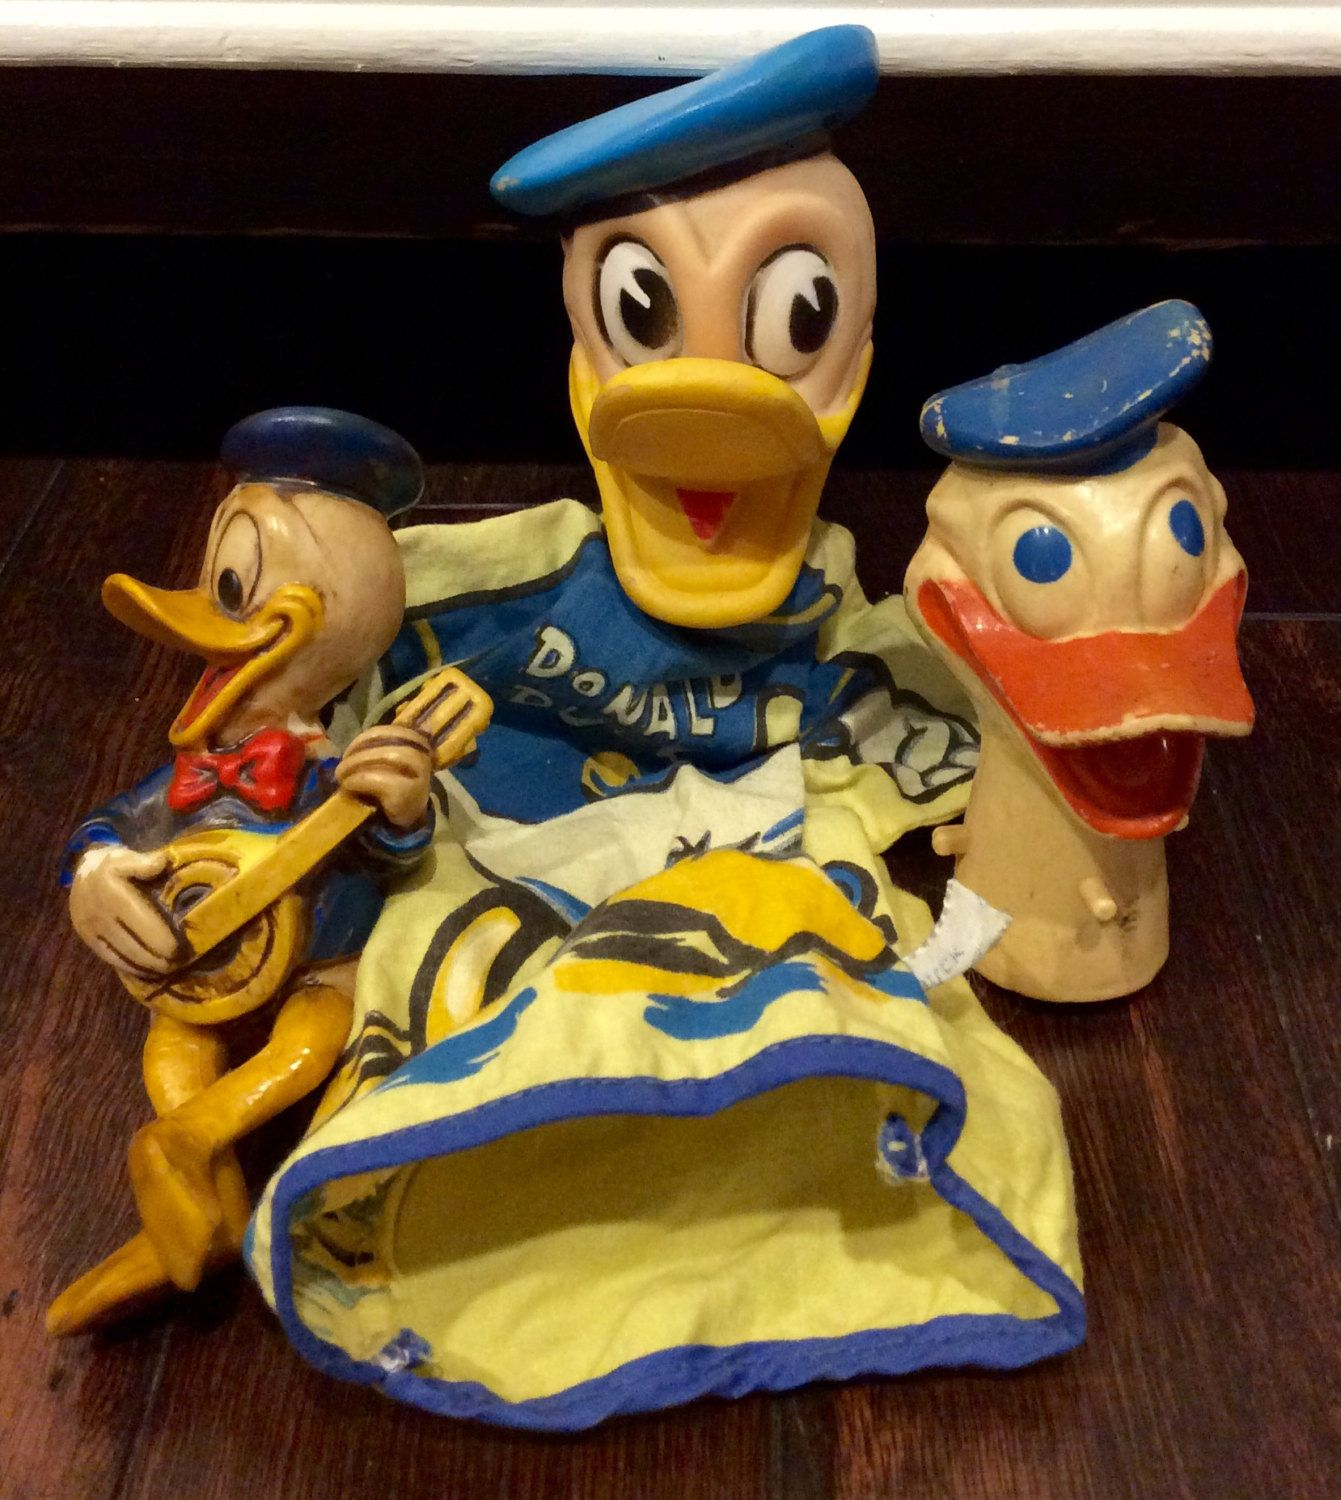 Vintage donald duck toy